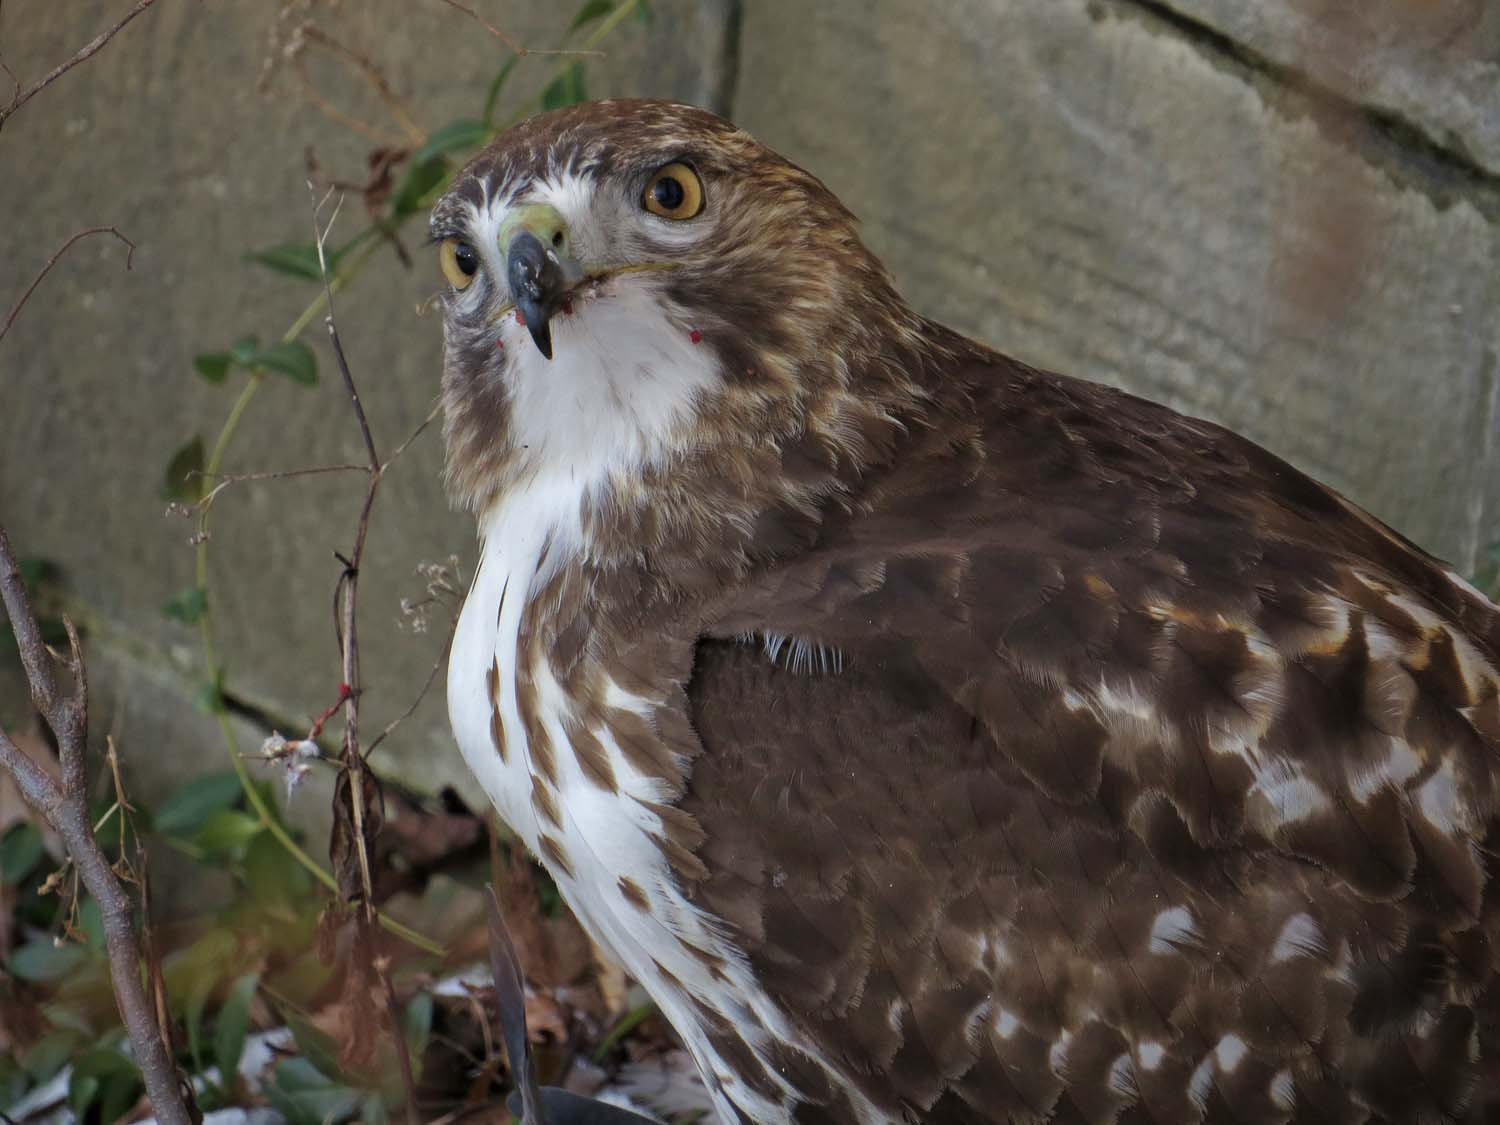 First-year red-tailed hawk dining at Bow Bridge, Jan. 15, 2017